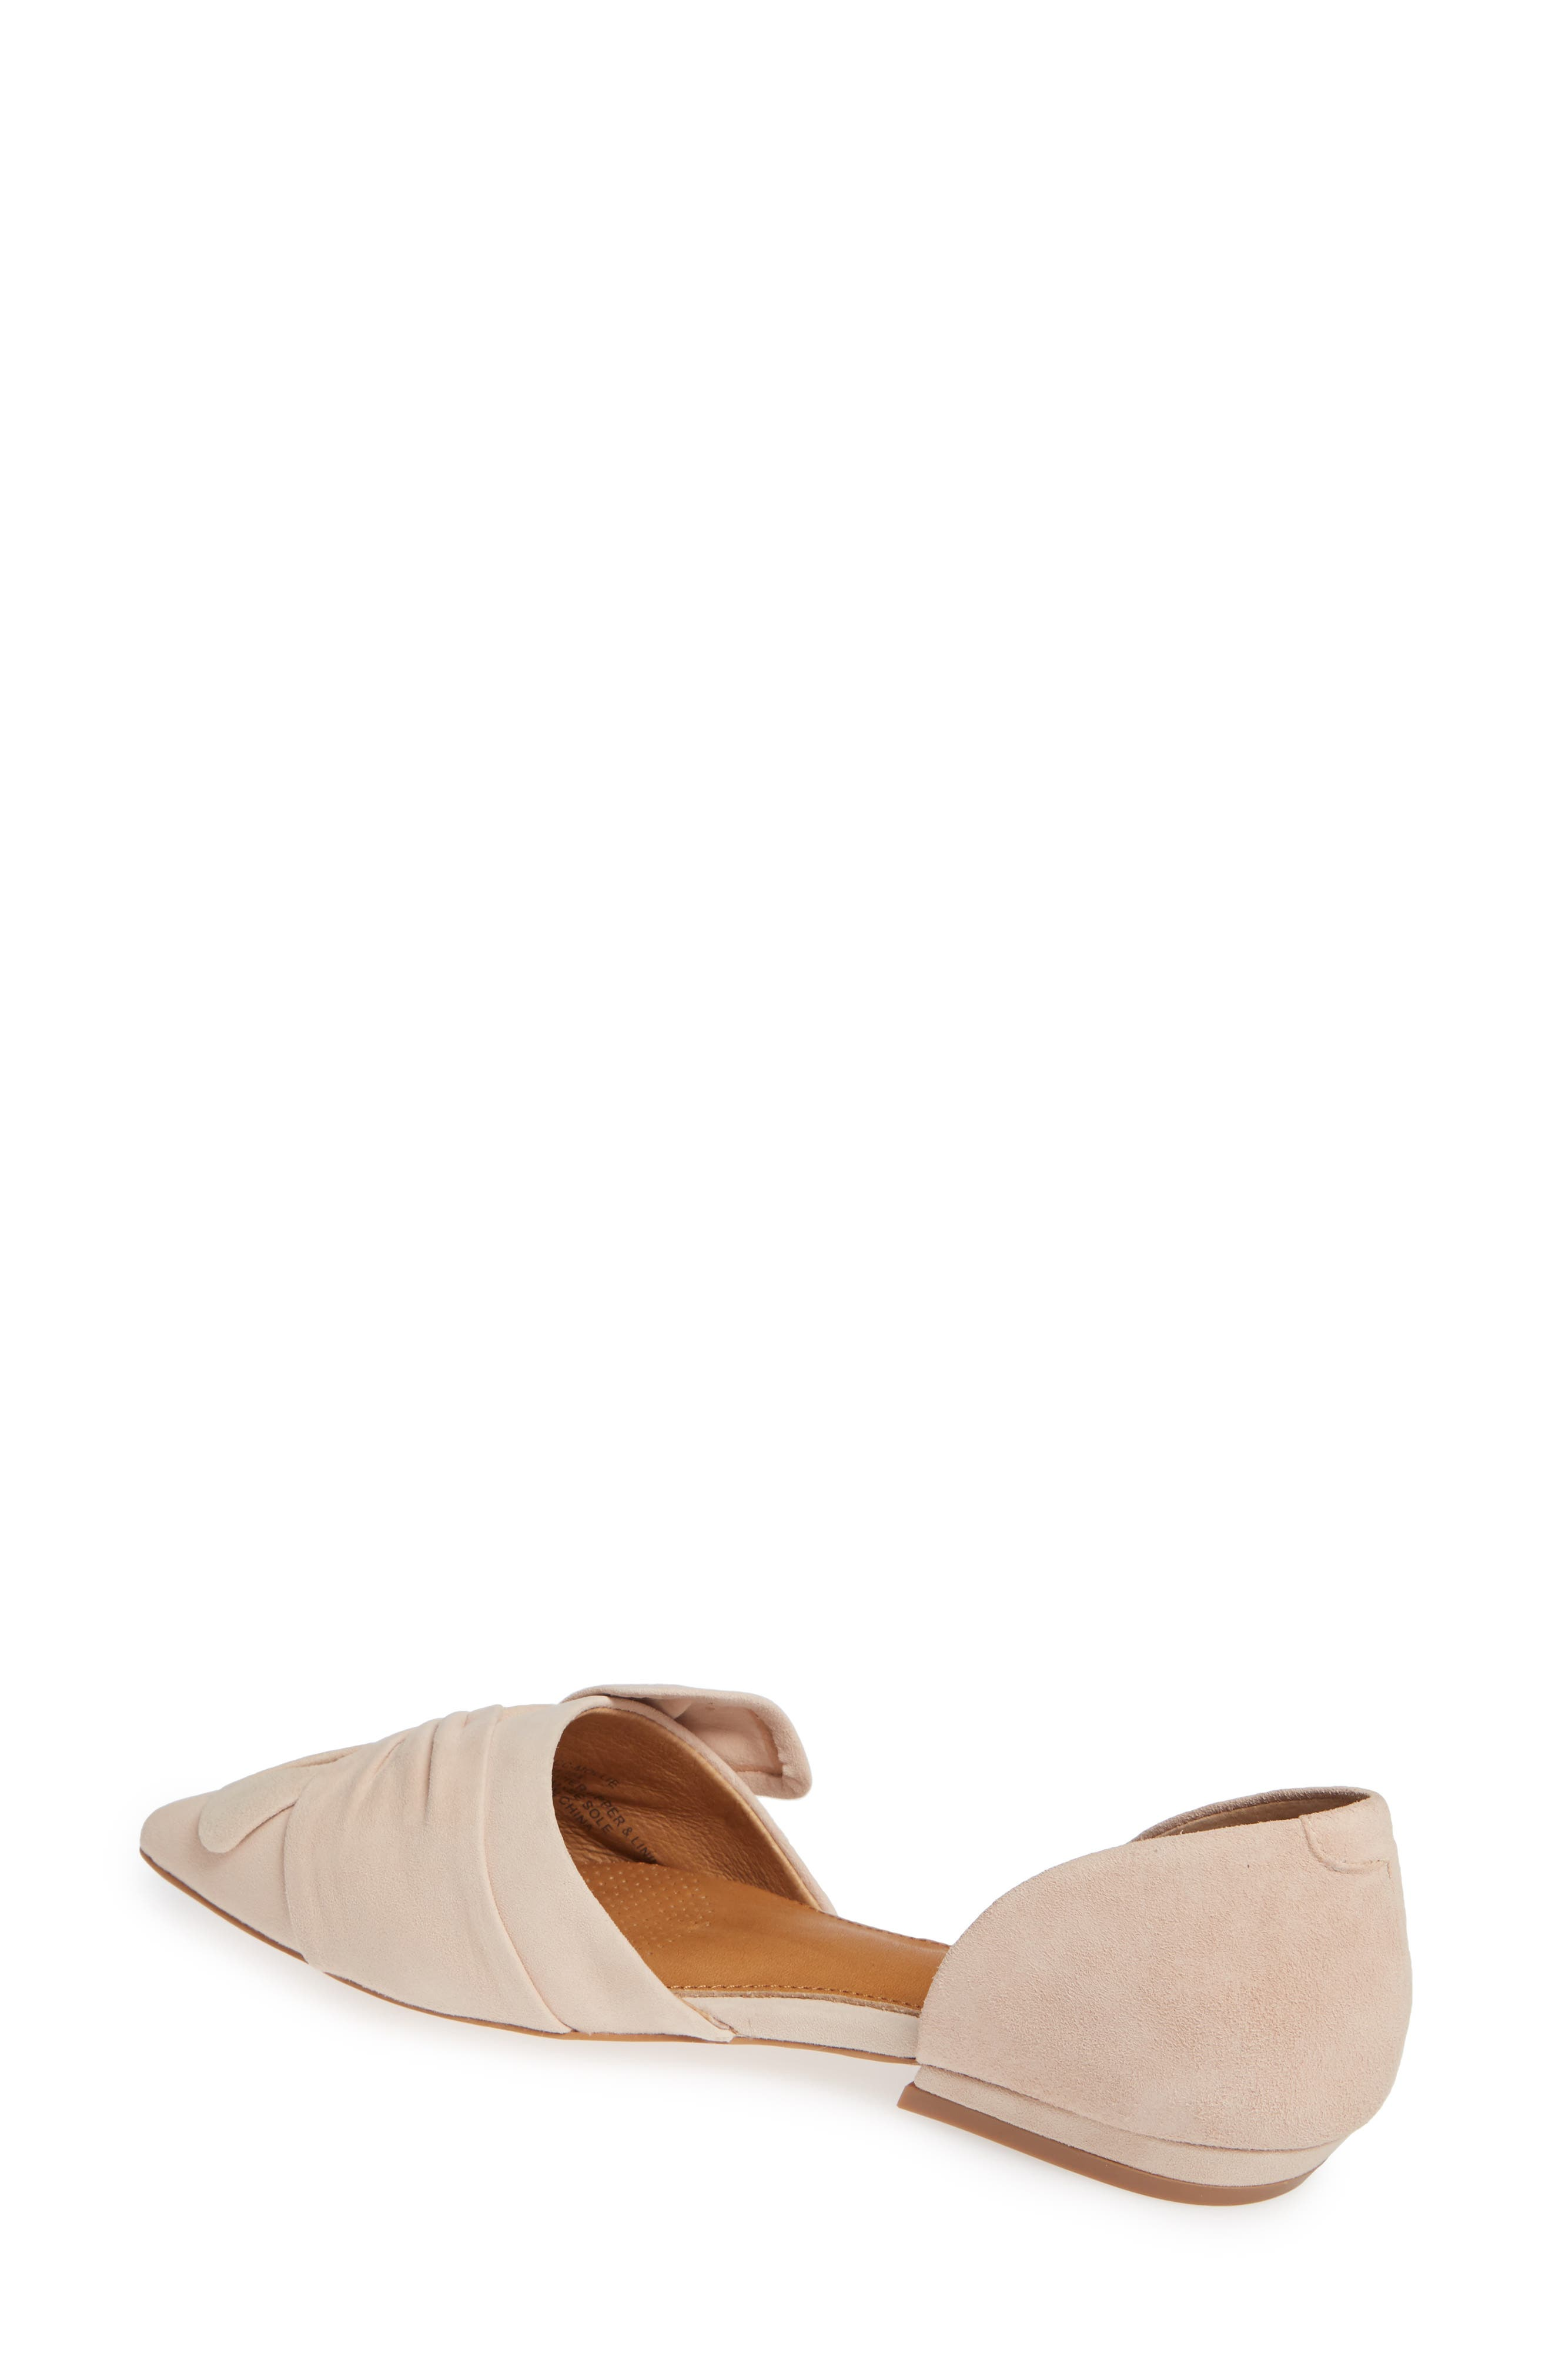 Mollie d'Orsay Flat,                             Alternate thumbnail 2, color,                             Nude Suede